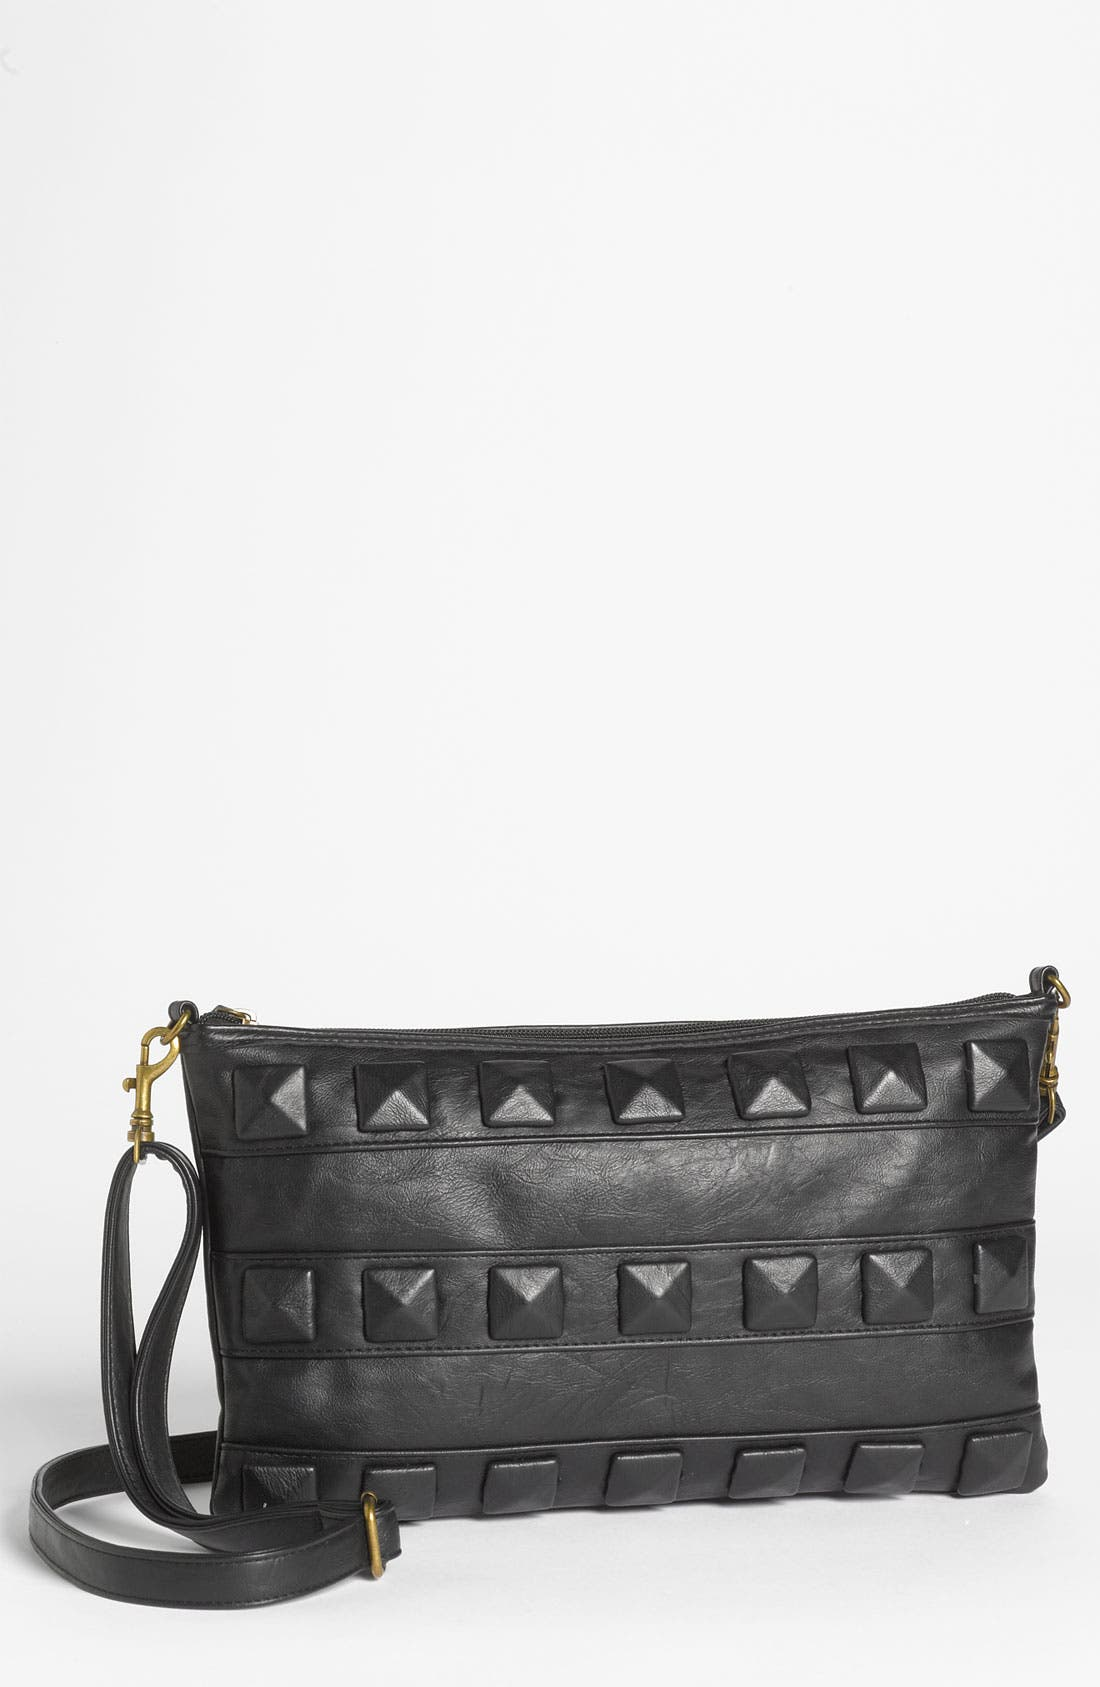 Main Image - Lulu Studded Faux Leather Crossbody Bag